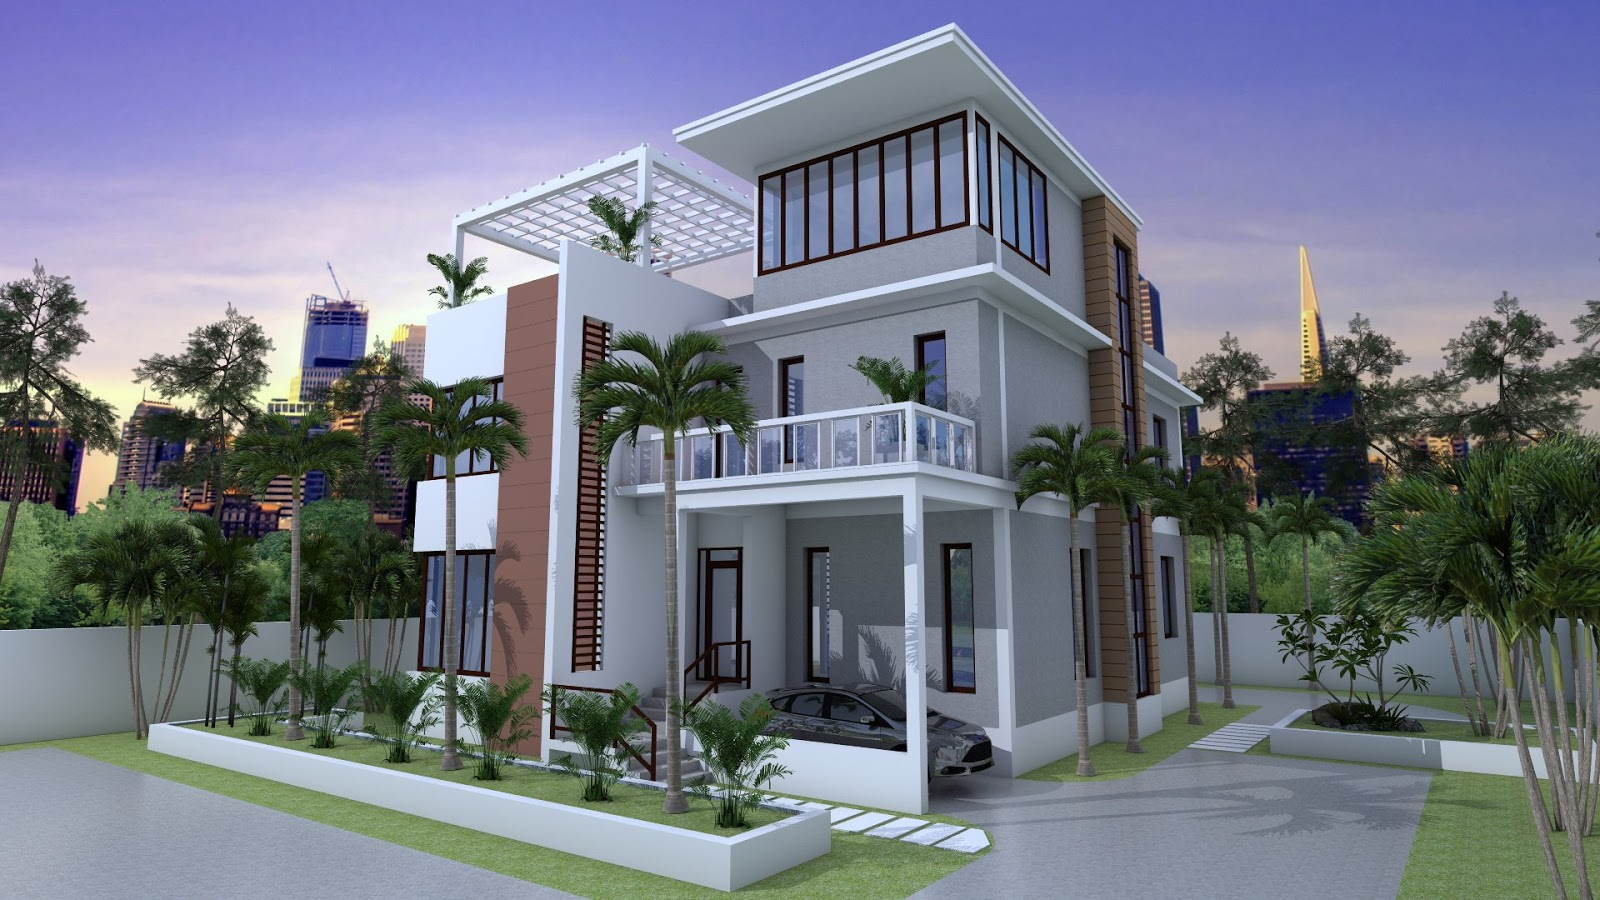 SketchUp Home Plan 12x14m 3 Story House With 4 Bedrooms